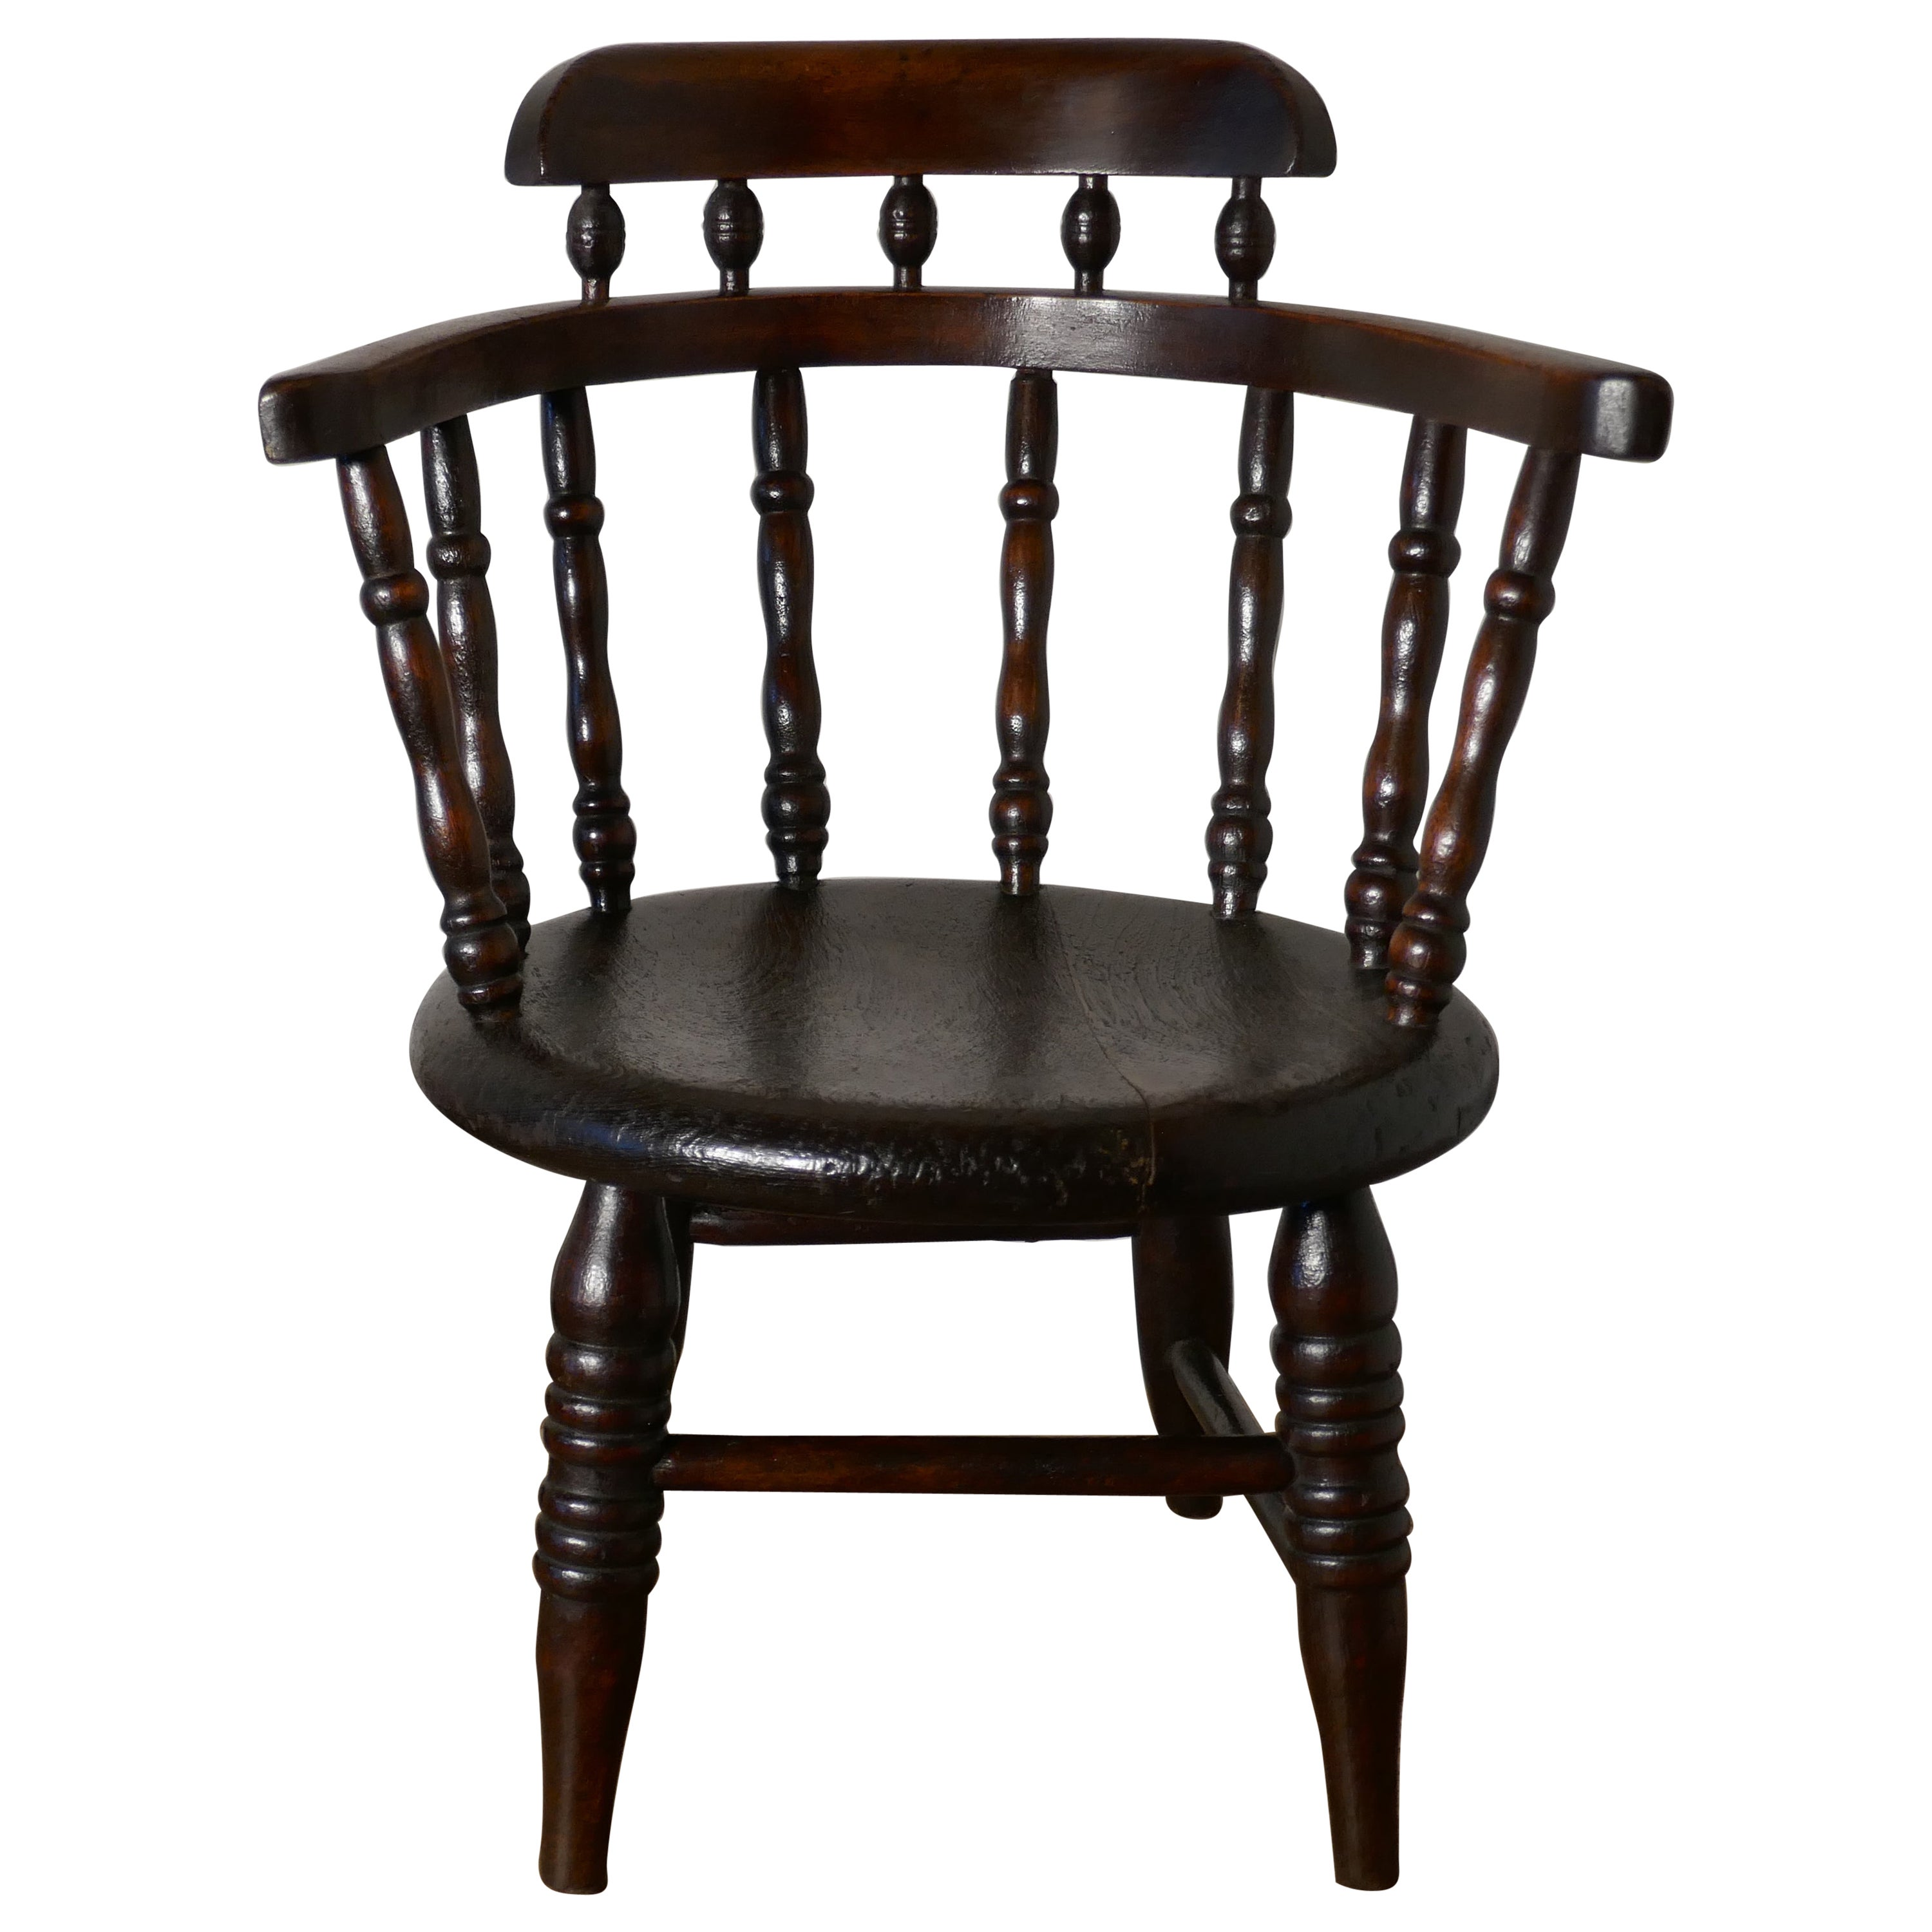 Childs Chair, in the Style of a Captain's Chair